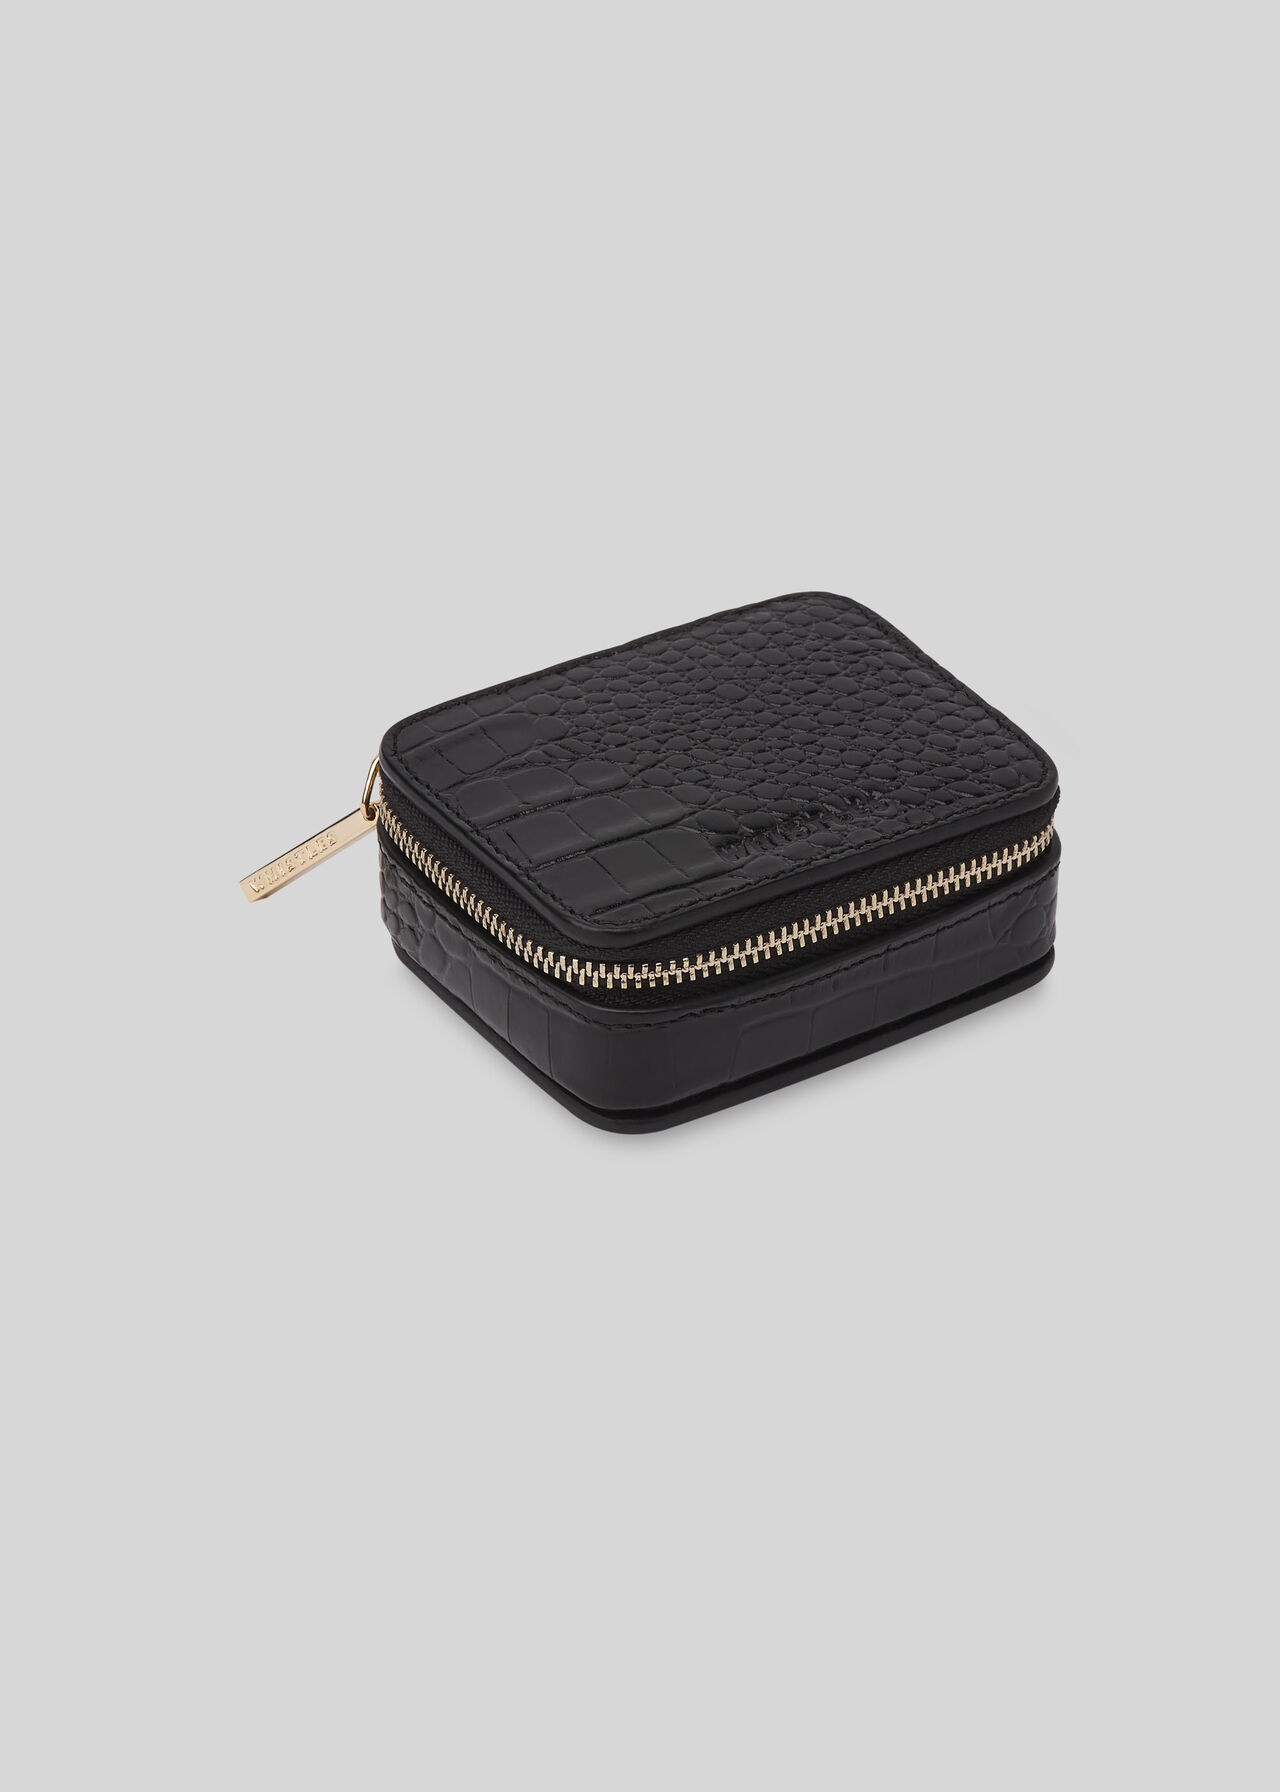 Mini Travel Jewellery Box Black